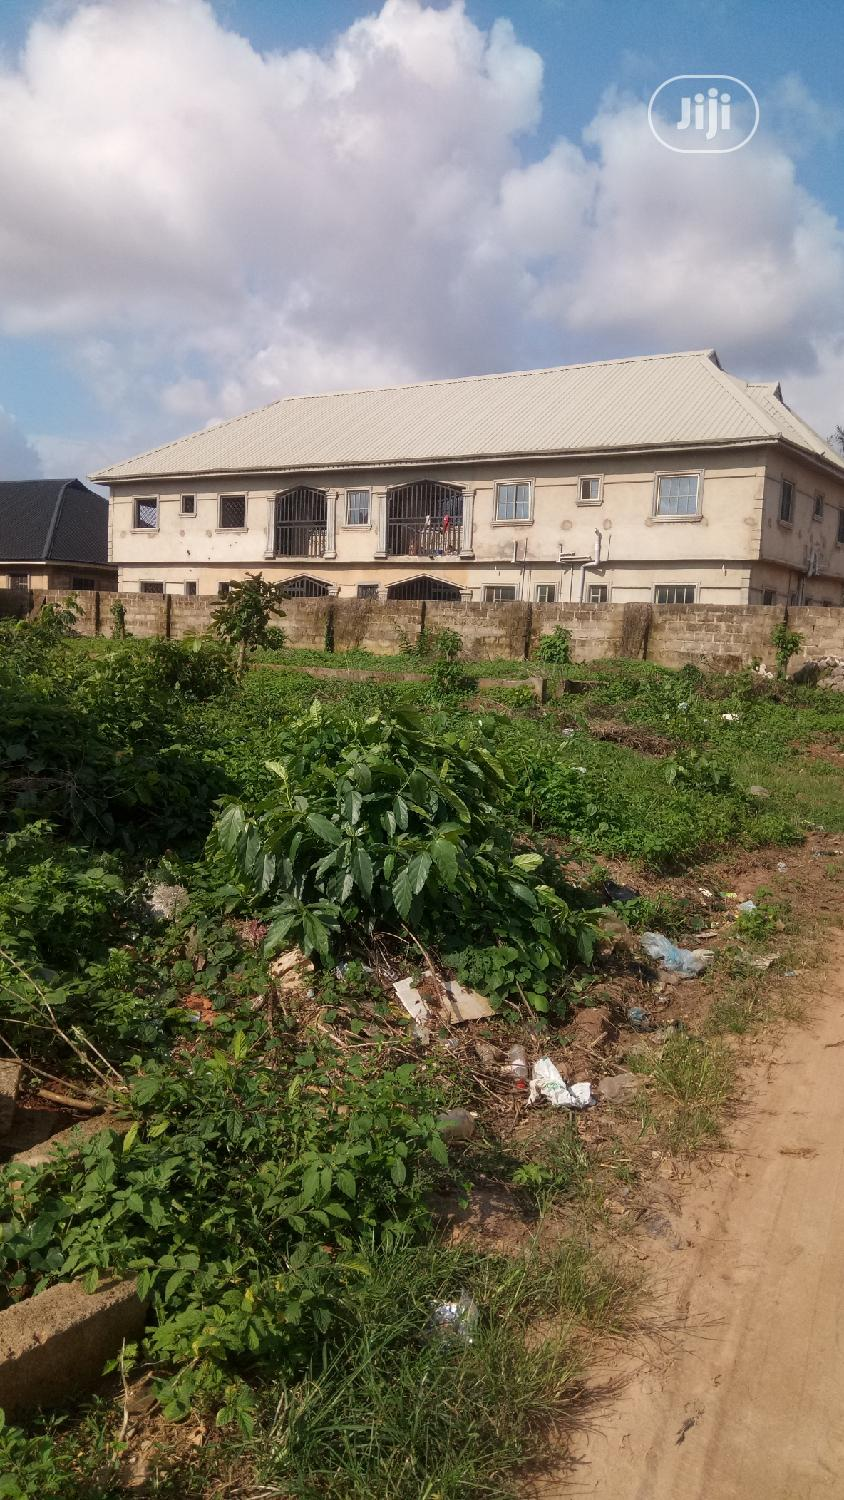 Genuine Plot of Land Measuring 100X100FT in a Good Location for Sale | Land & Plots For Sale for sale in Benin City, Edo State, Nigeria